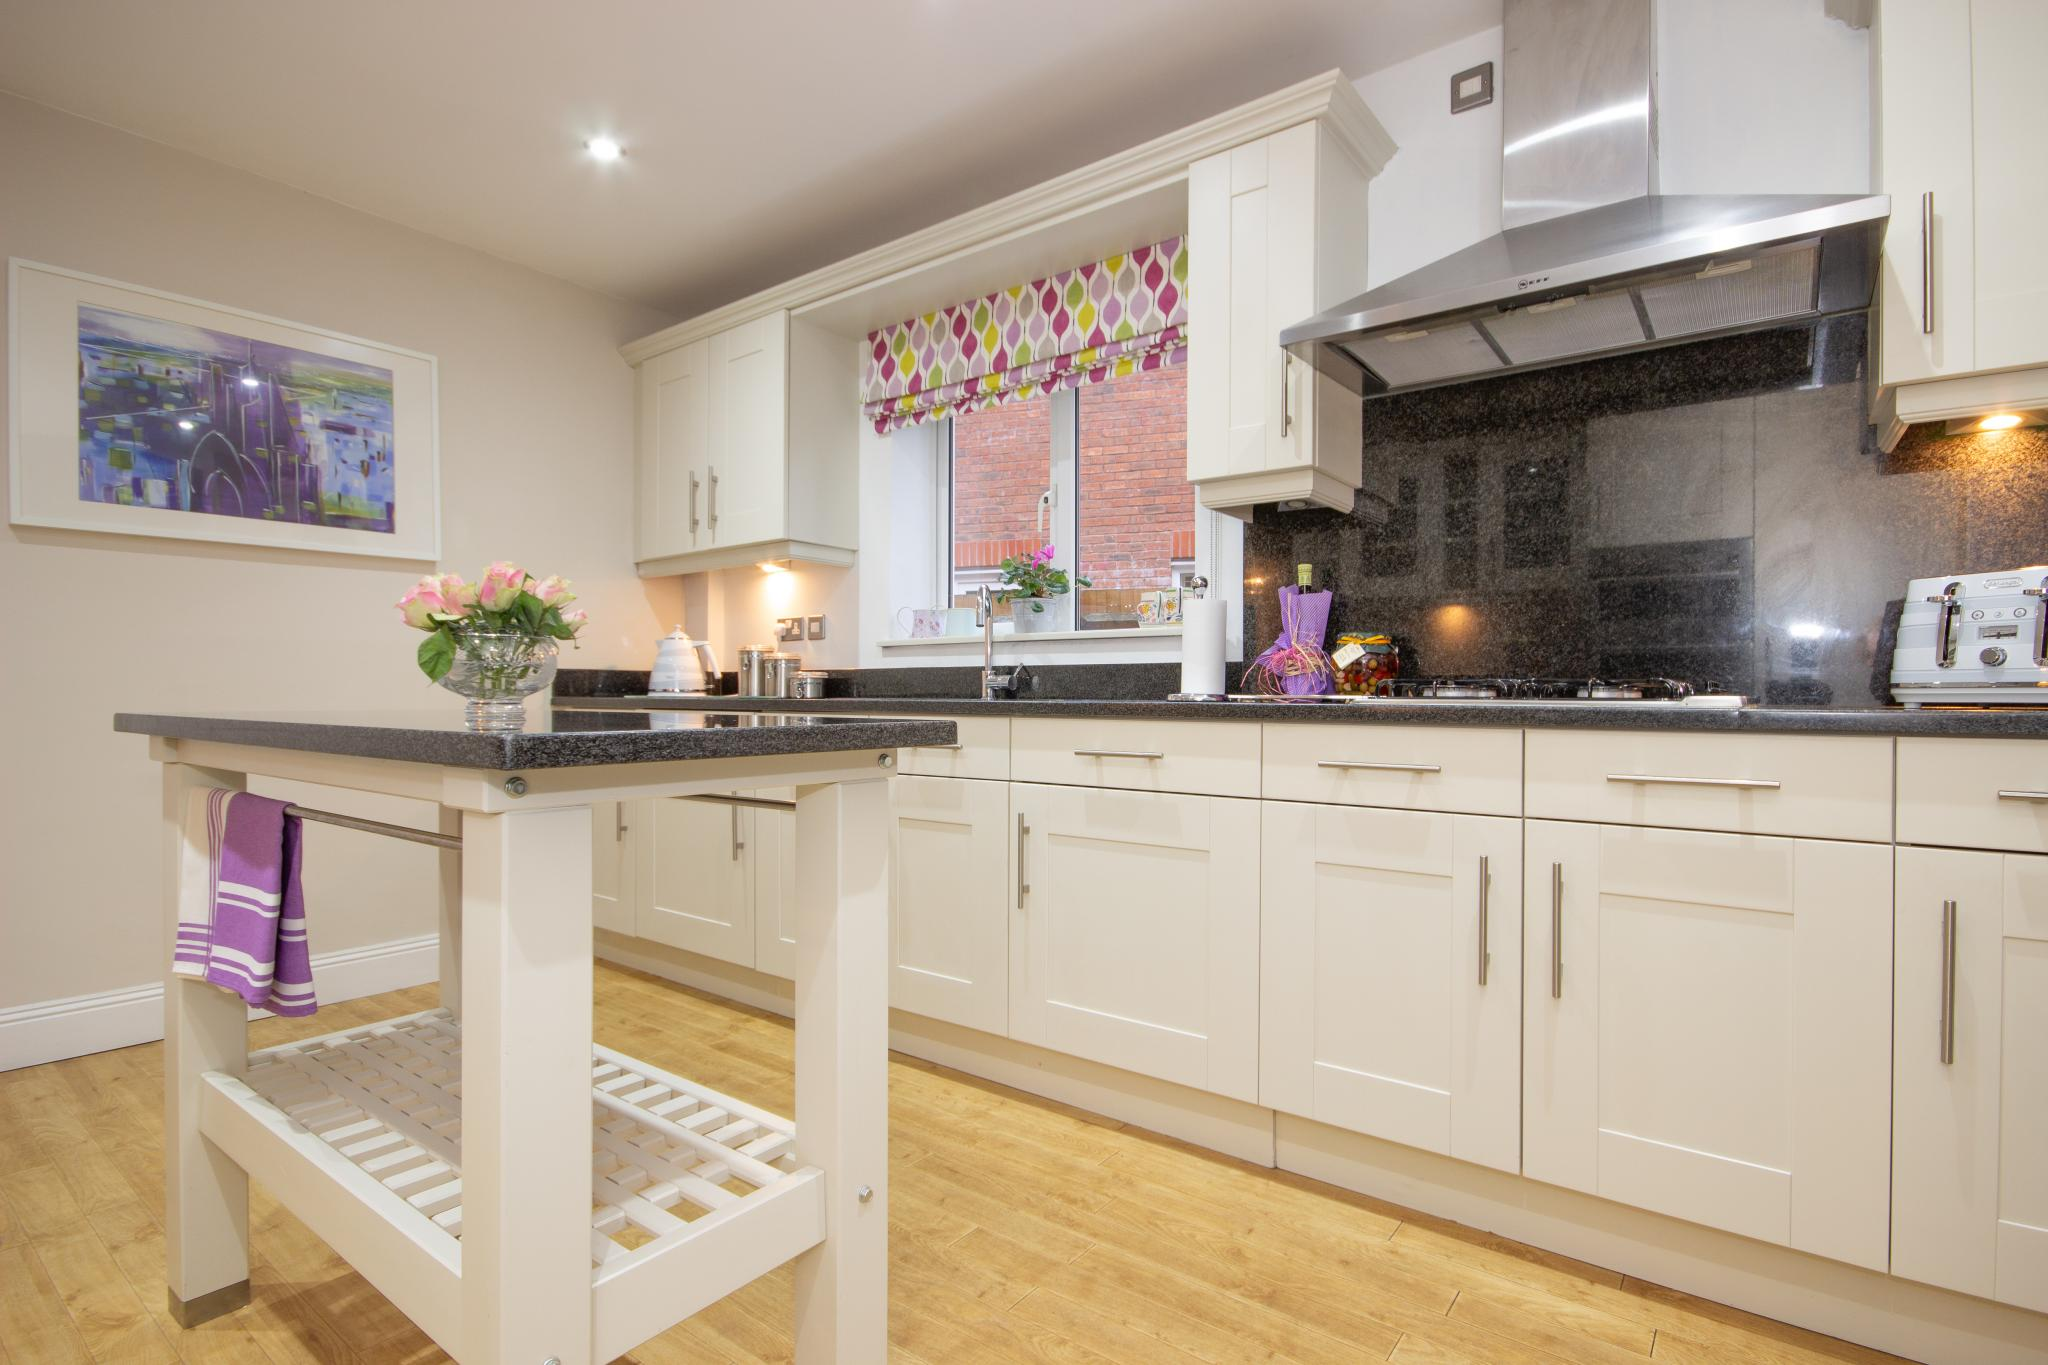 must go - large shaker kitchen with freestanding island